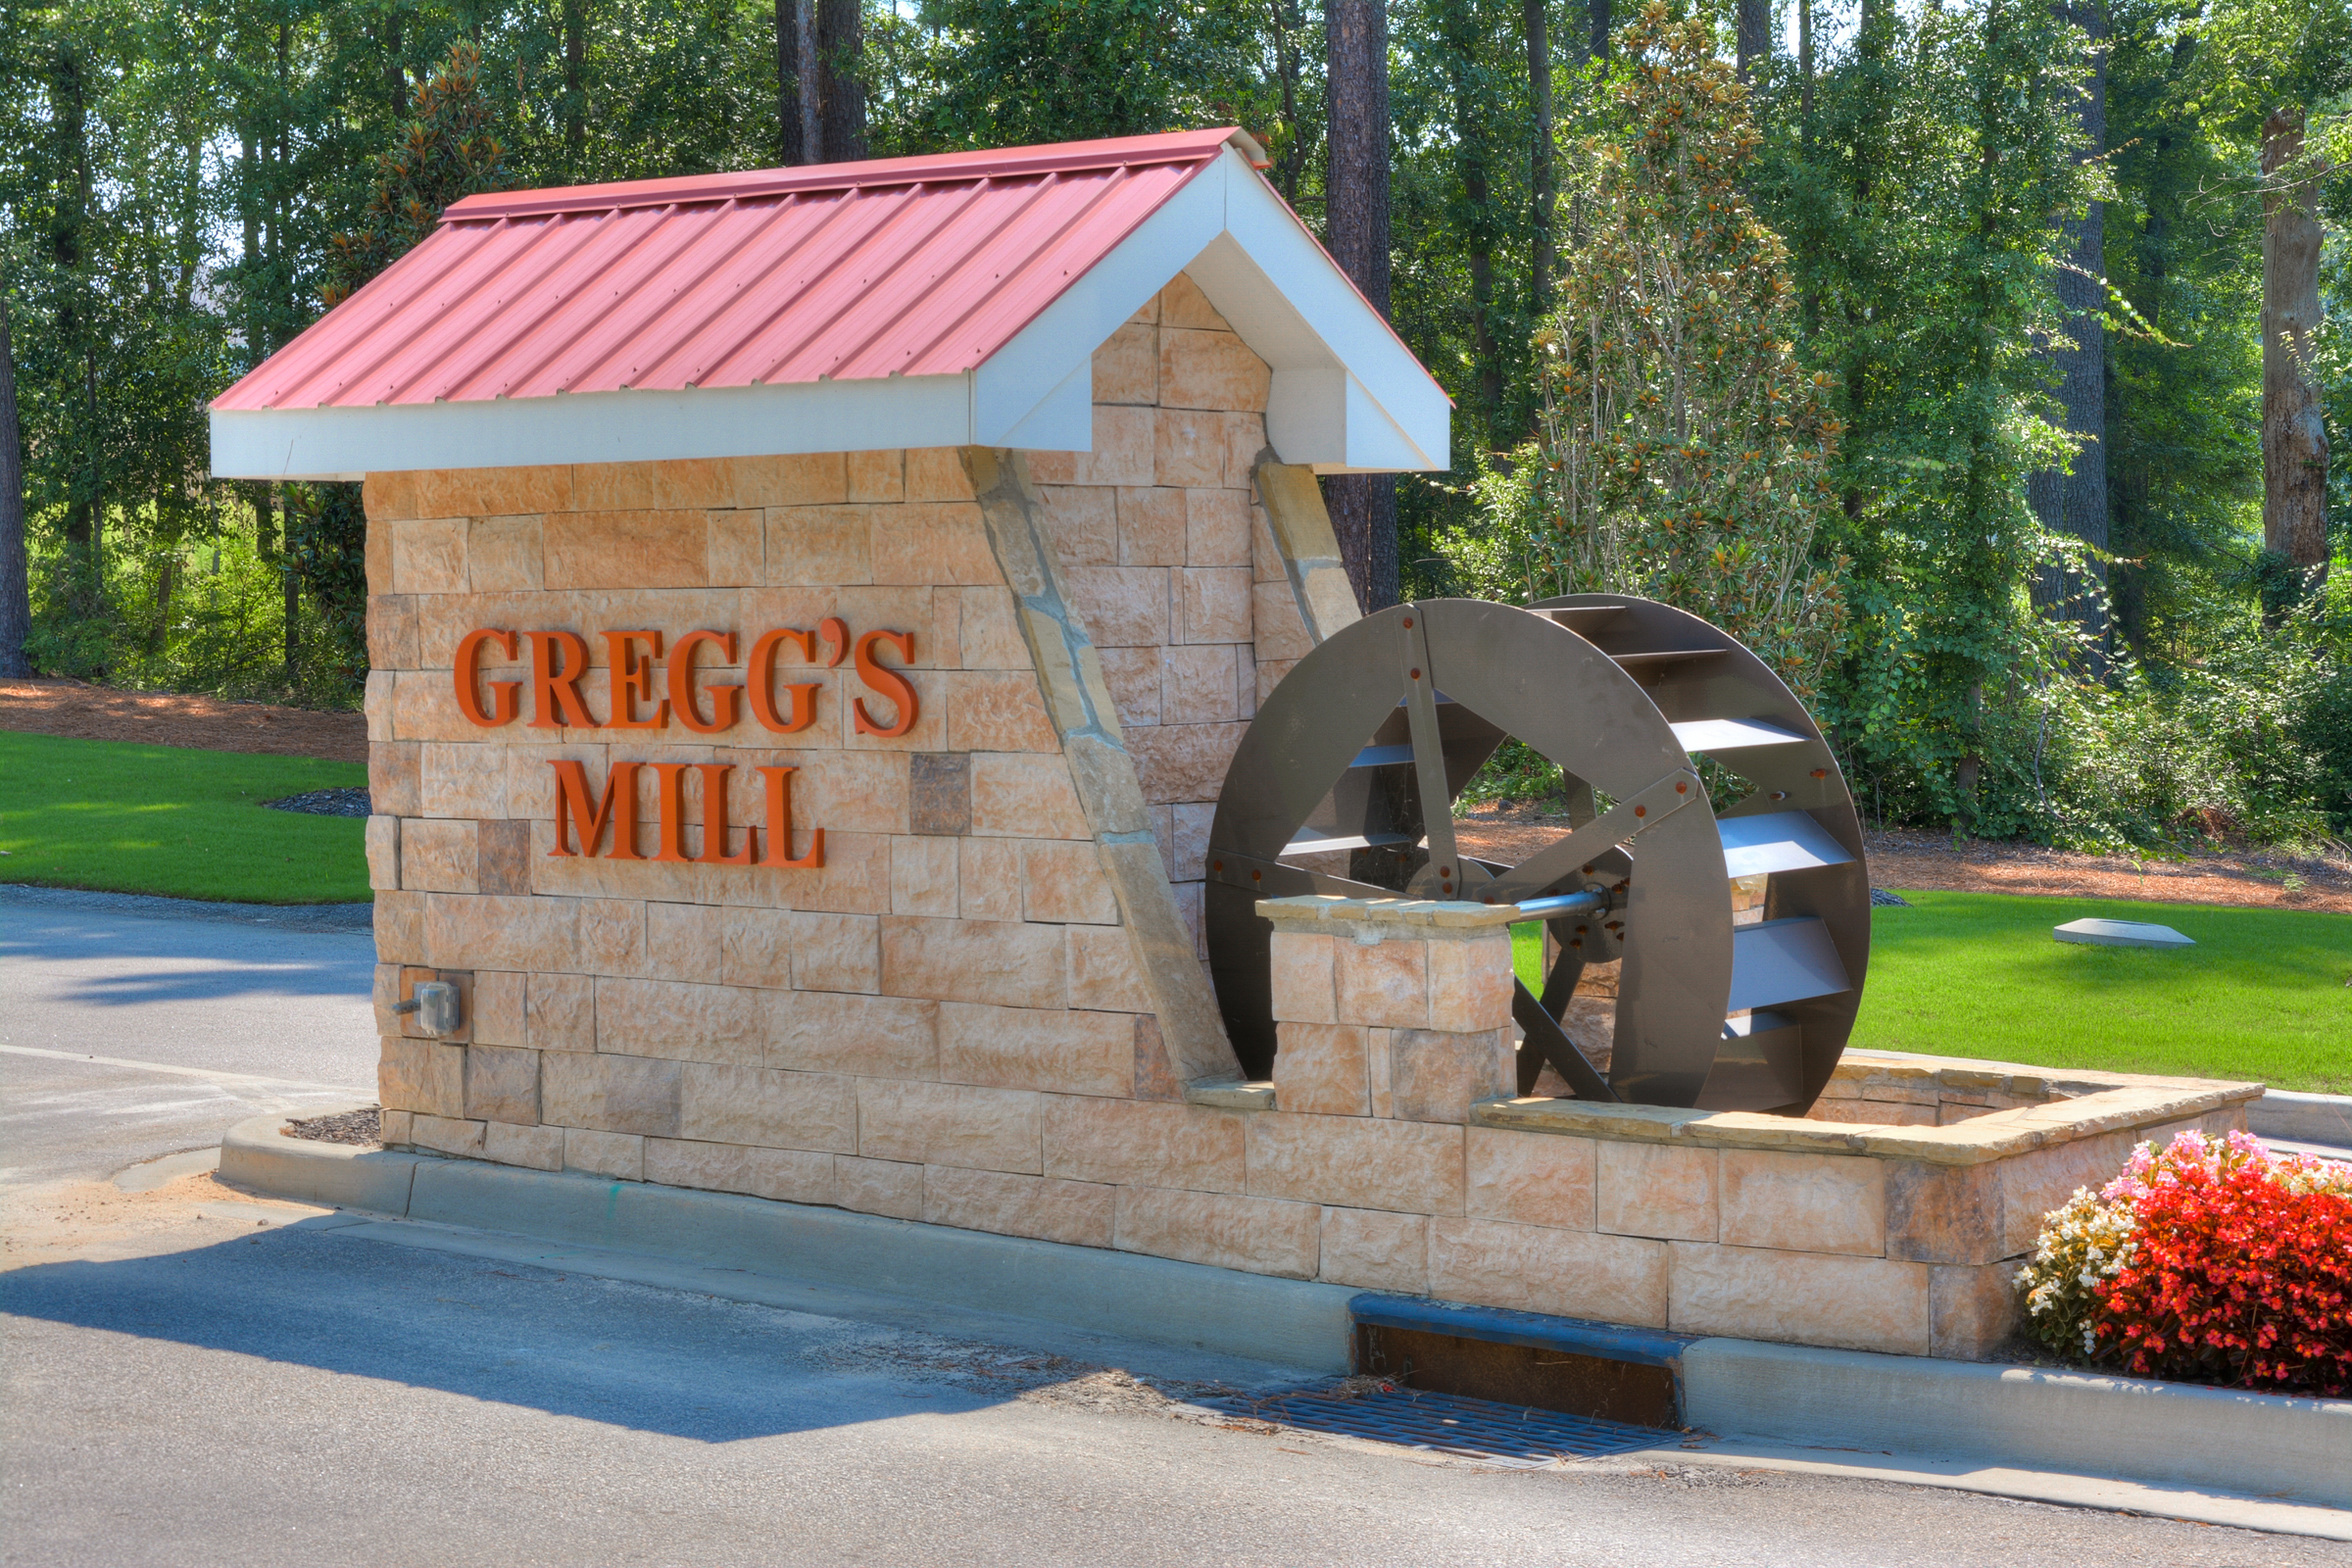 A close up image of Greggs Mill entrance.